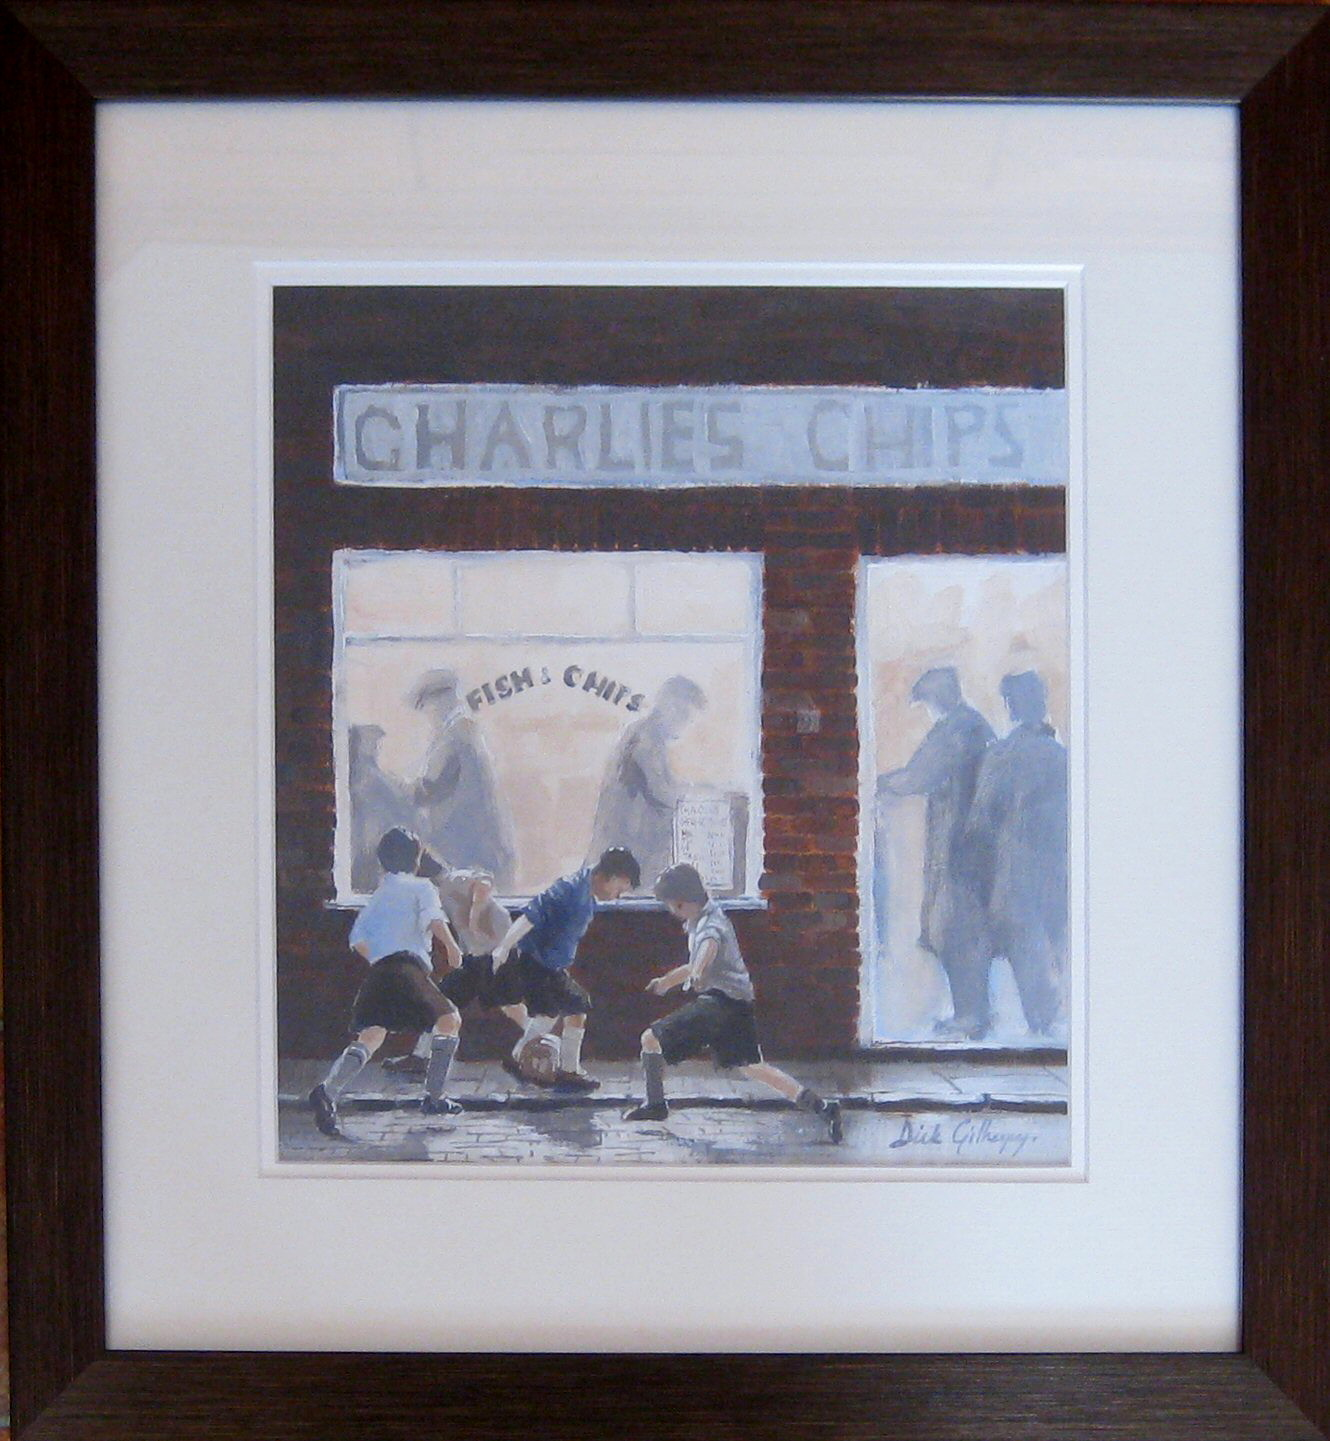 Charlies Chips,  original  football painting, Dick Gilhespy